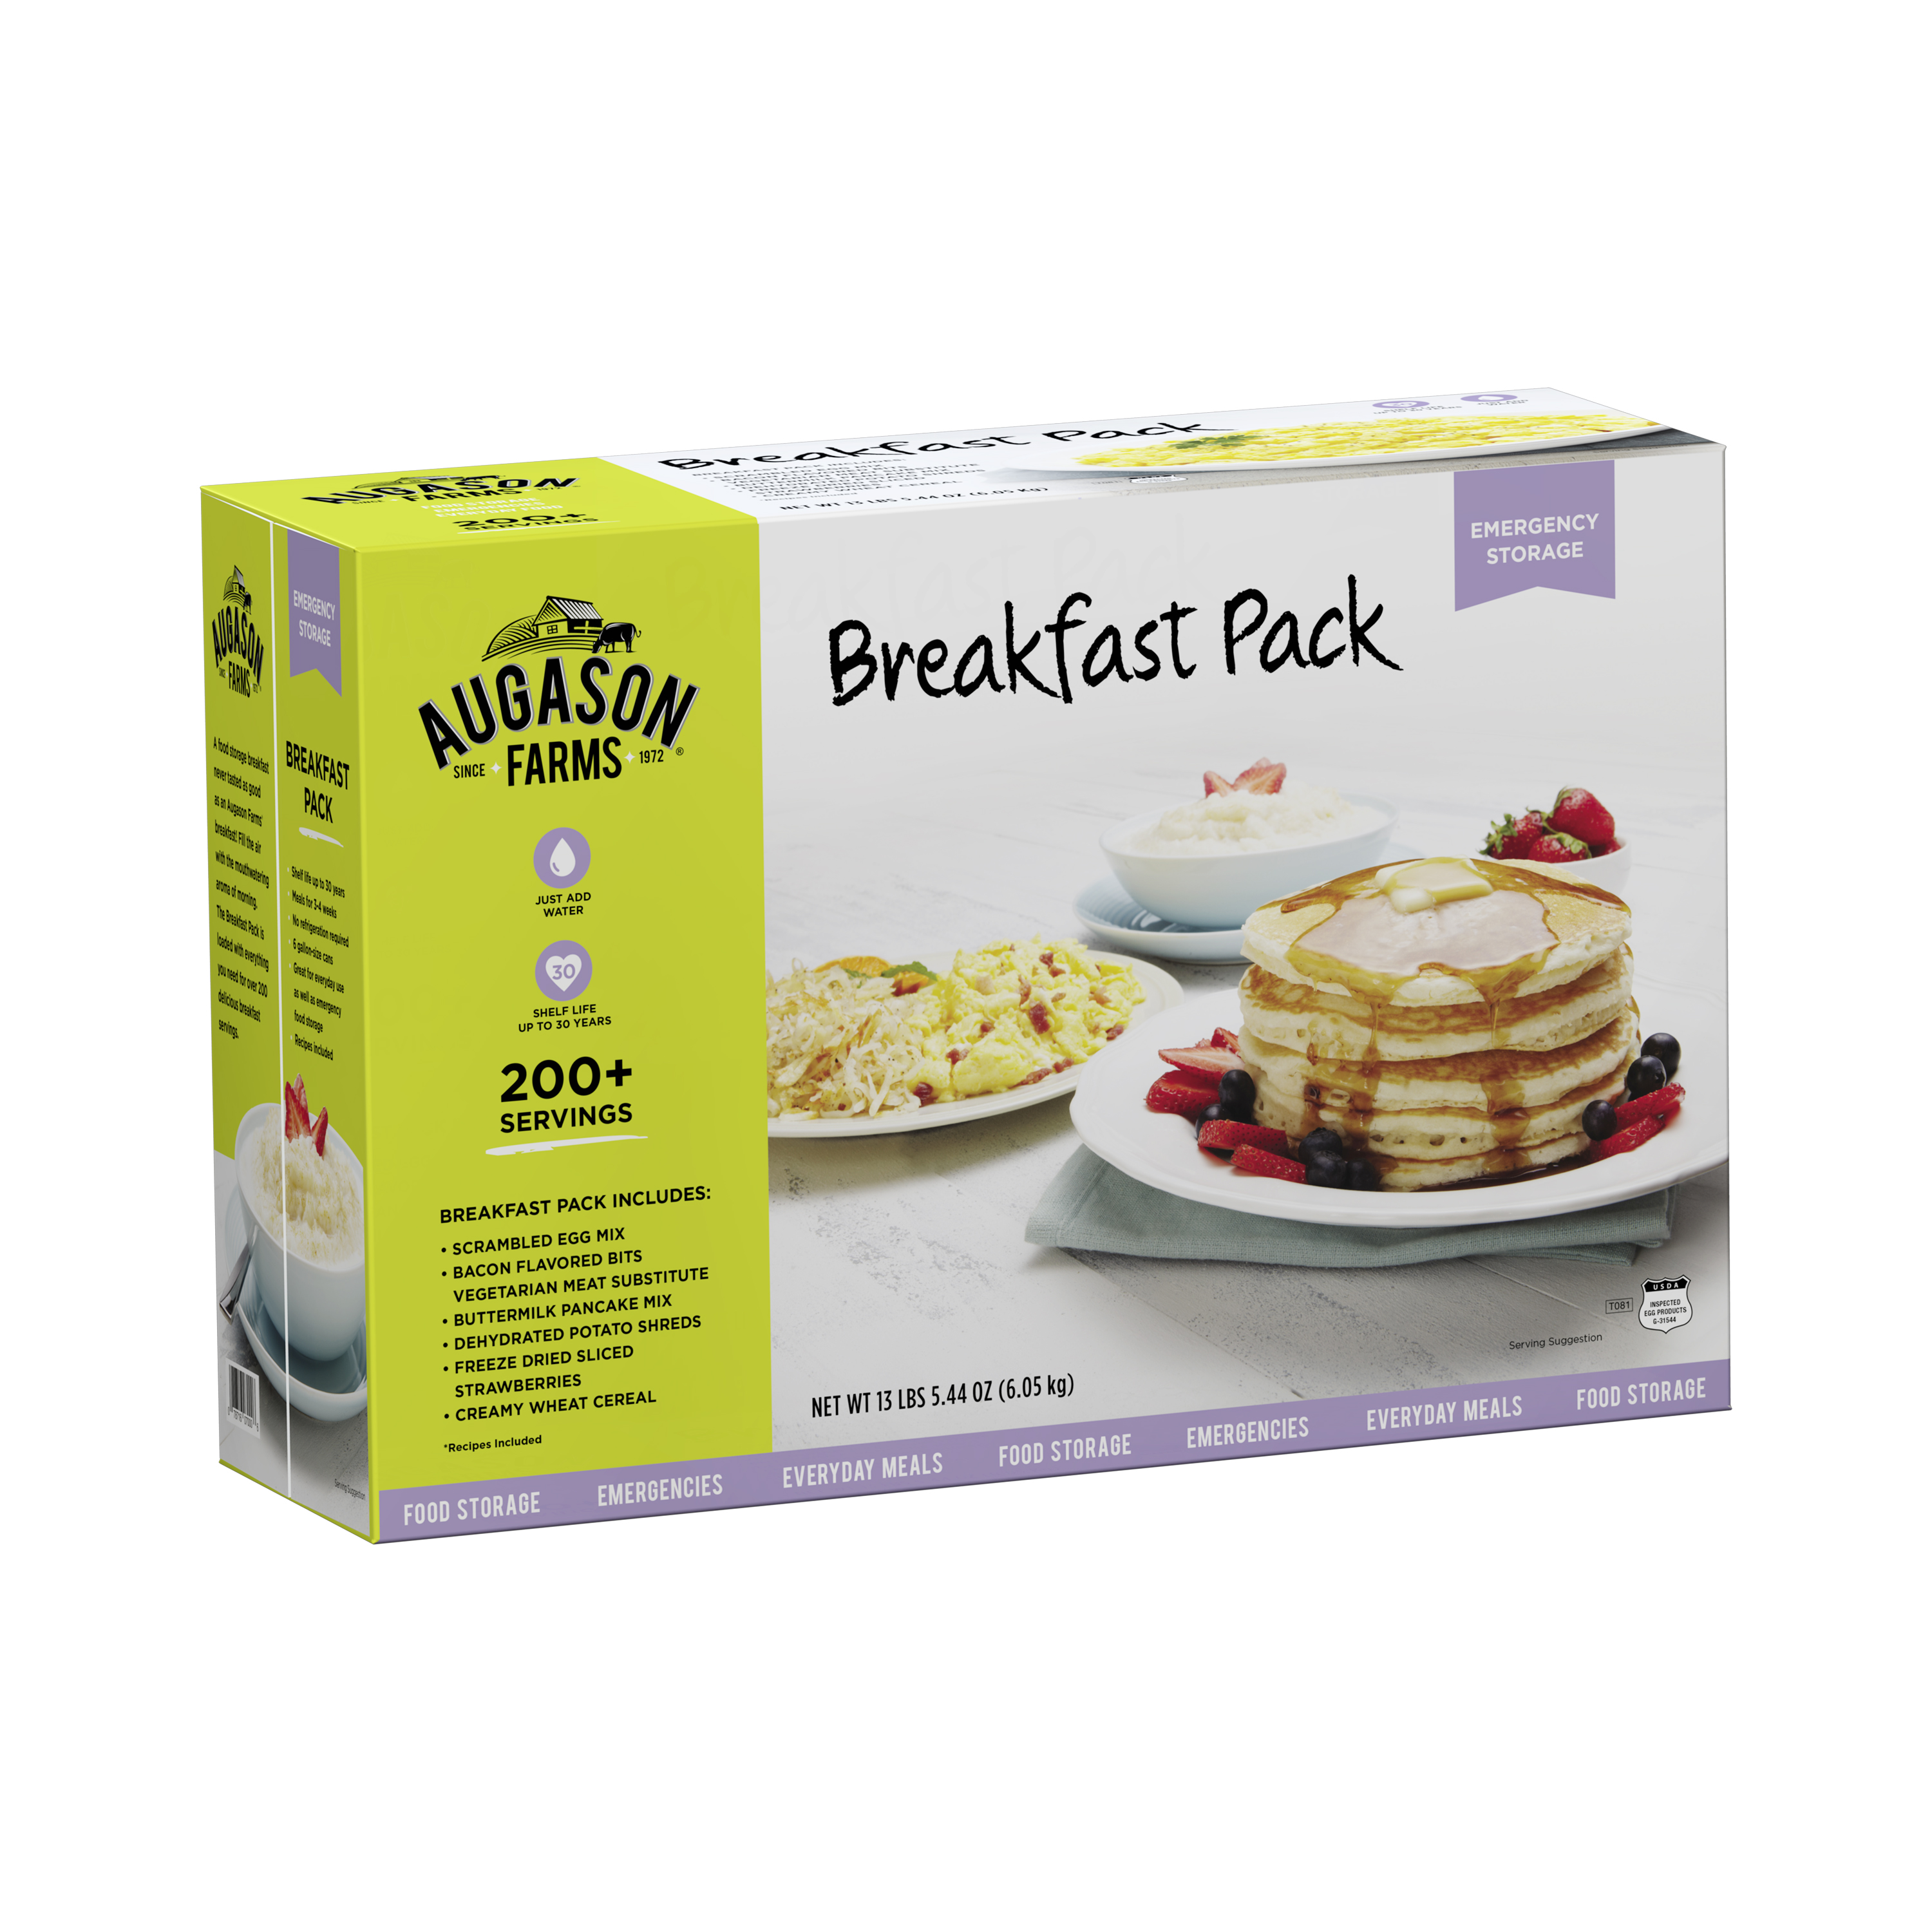 Augason Farms Breakfast Pack Emergency Food Storage Kit